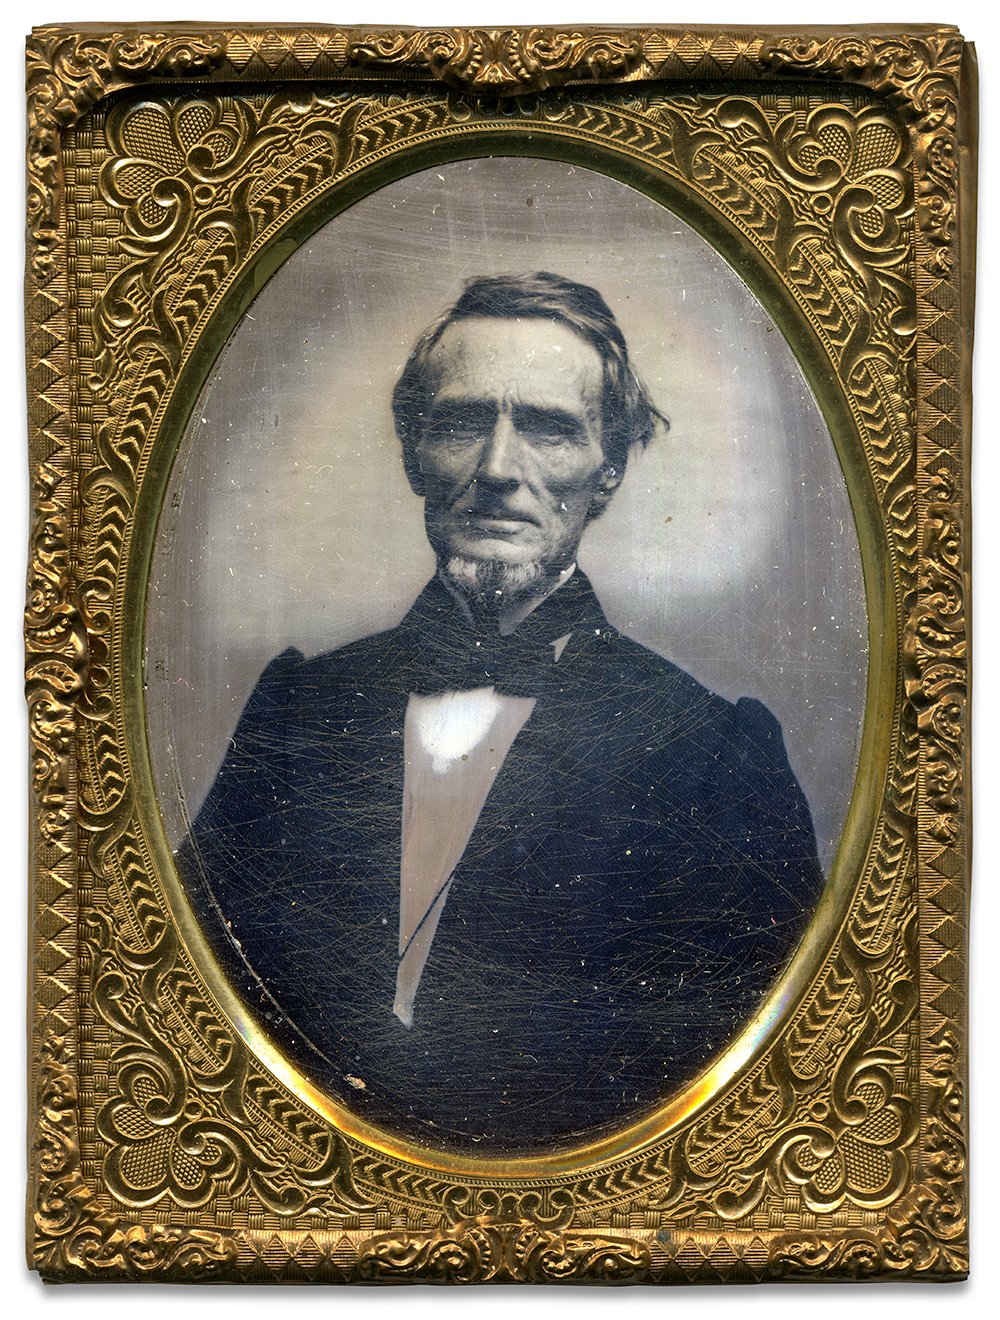 Quarter-plate tintype attributed to Jesse H. Whitehurst of Washington, D.C. John O'Brien collection.